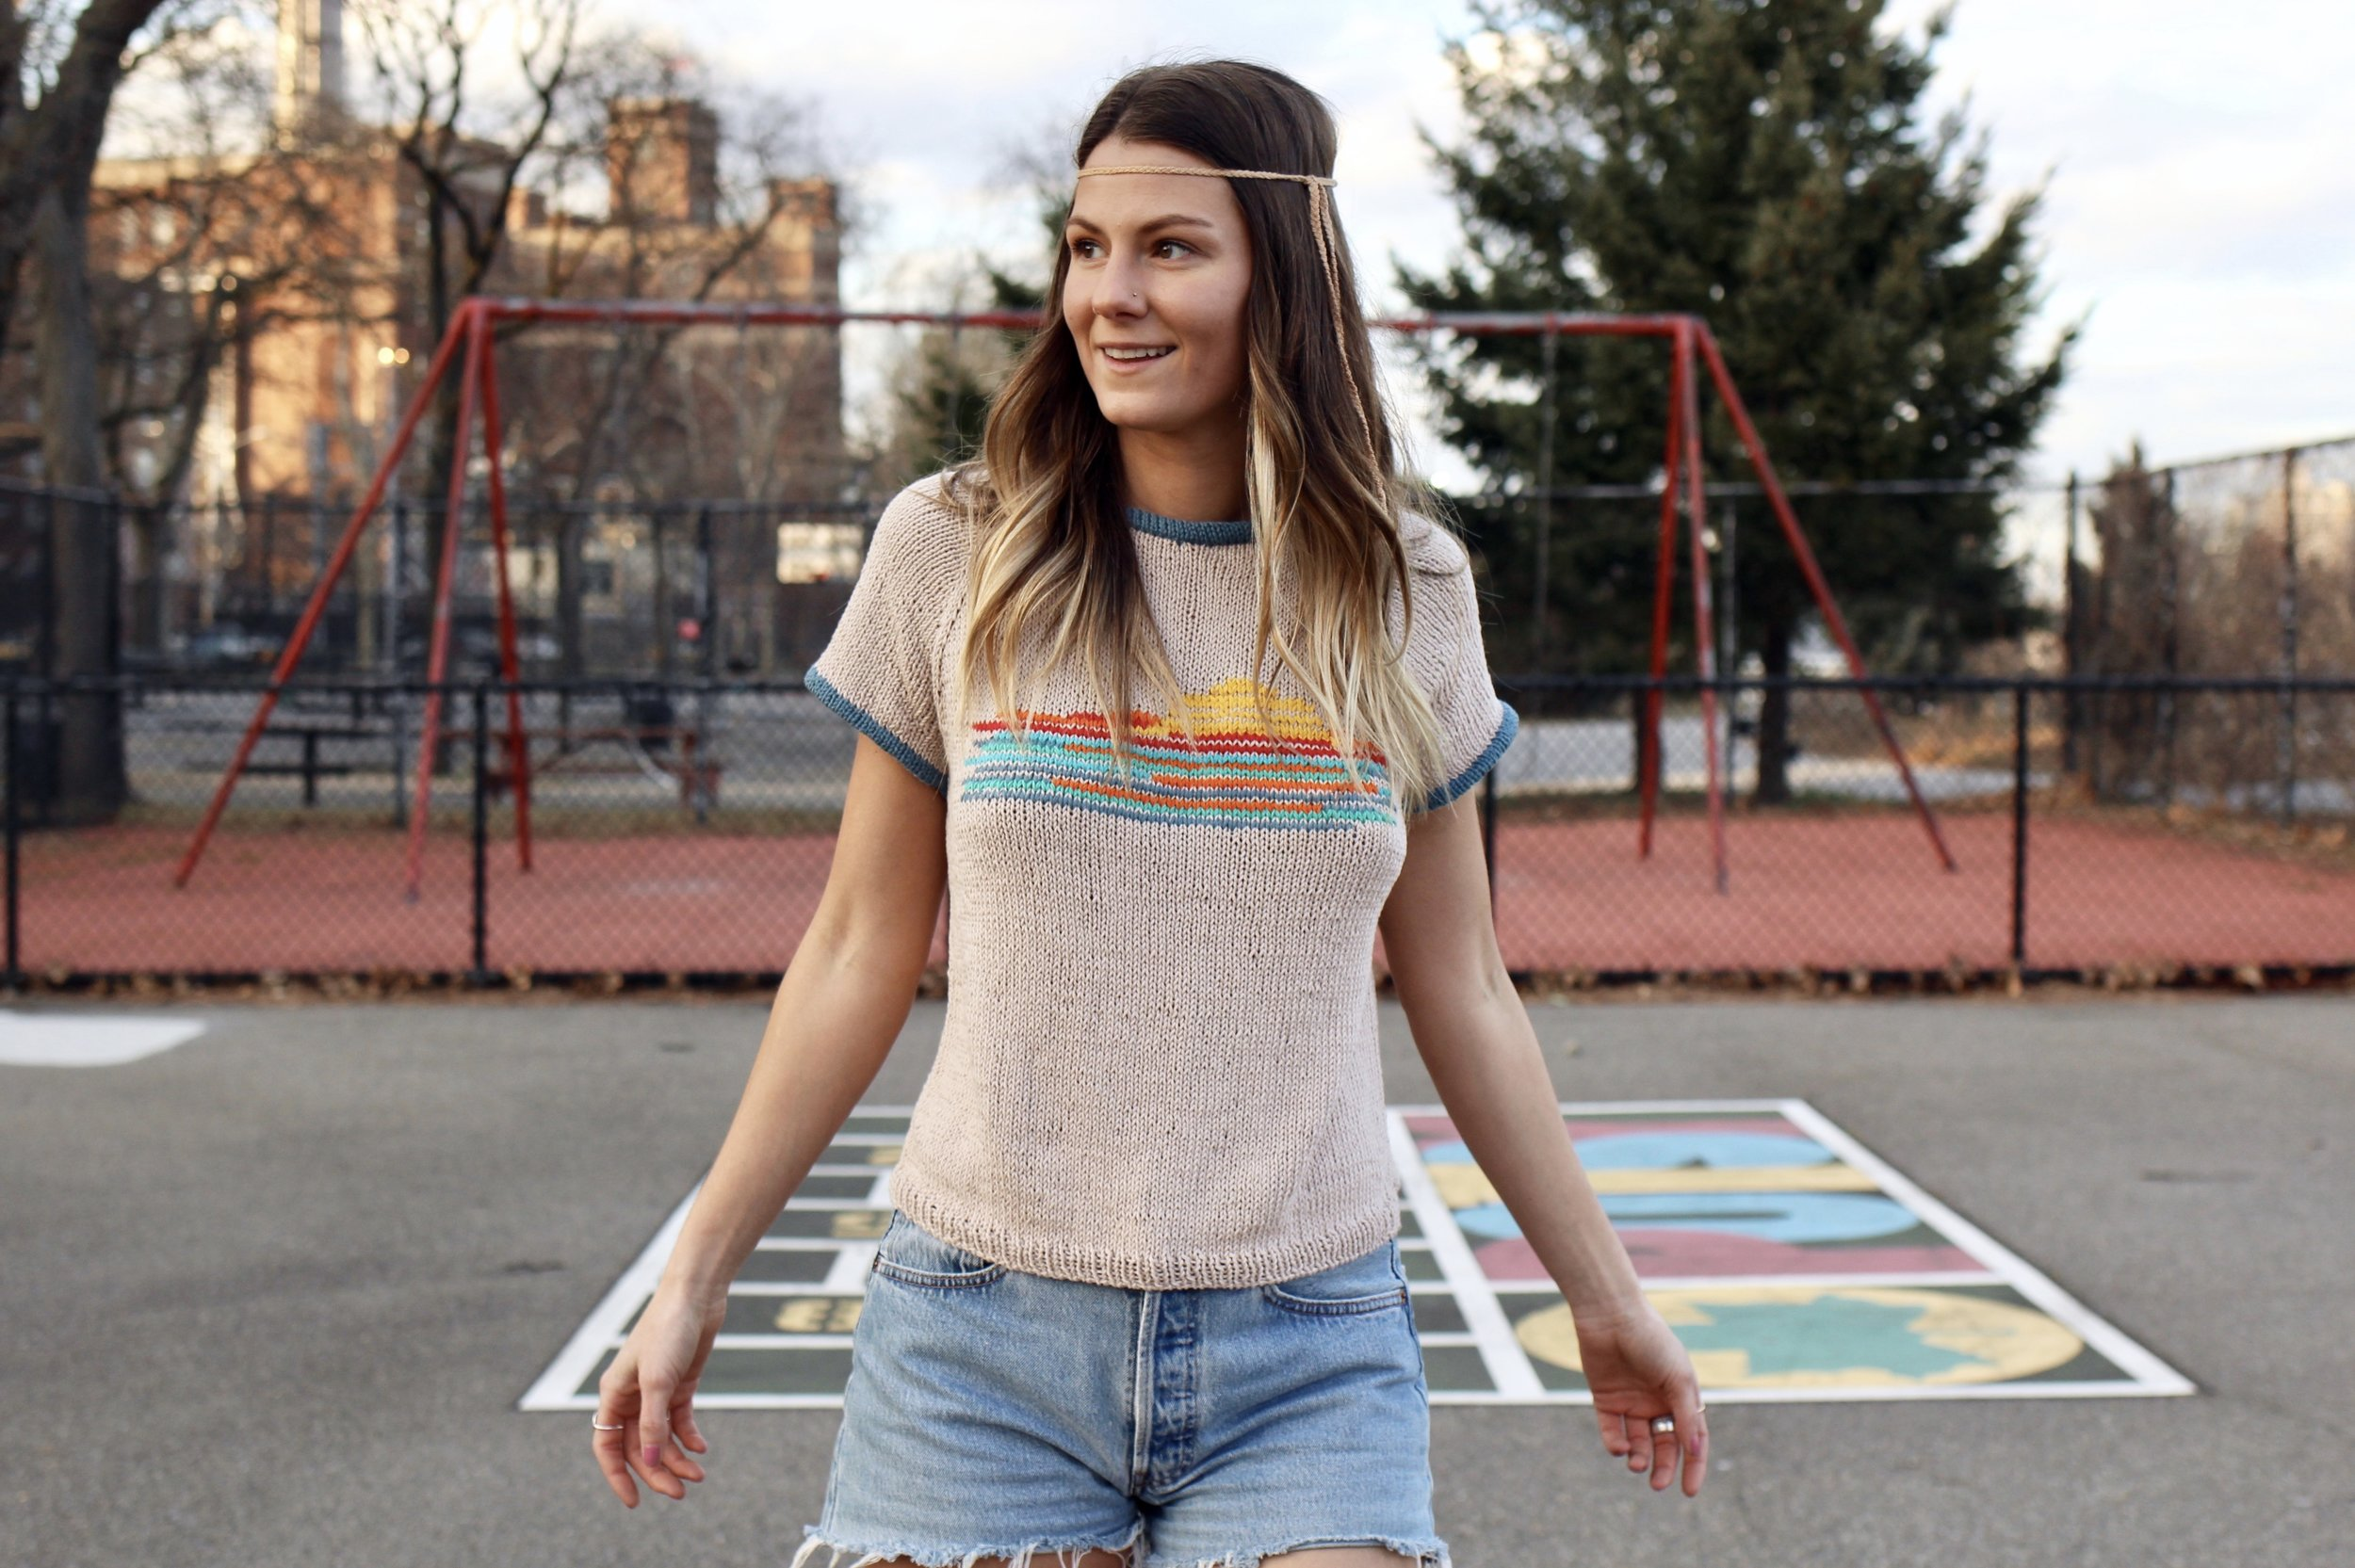 Sunset Ringer Tee pattern by Two of Wands